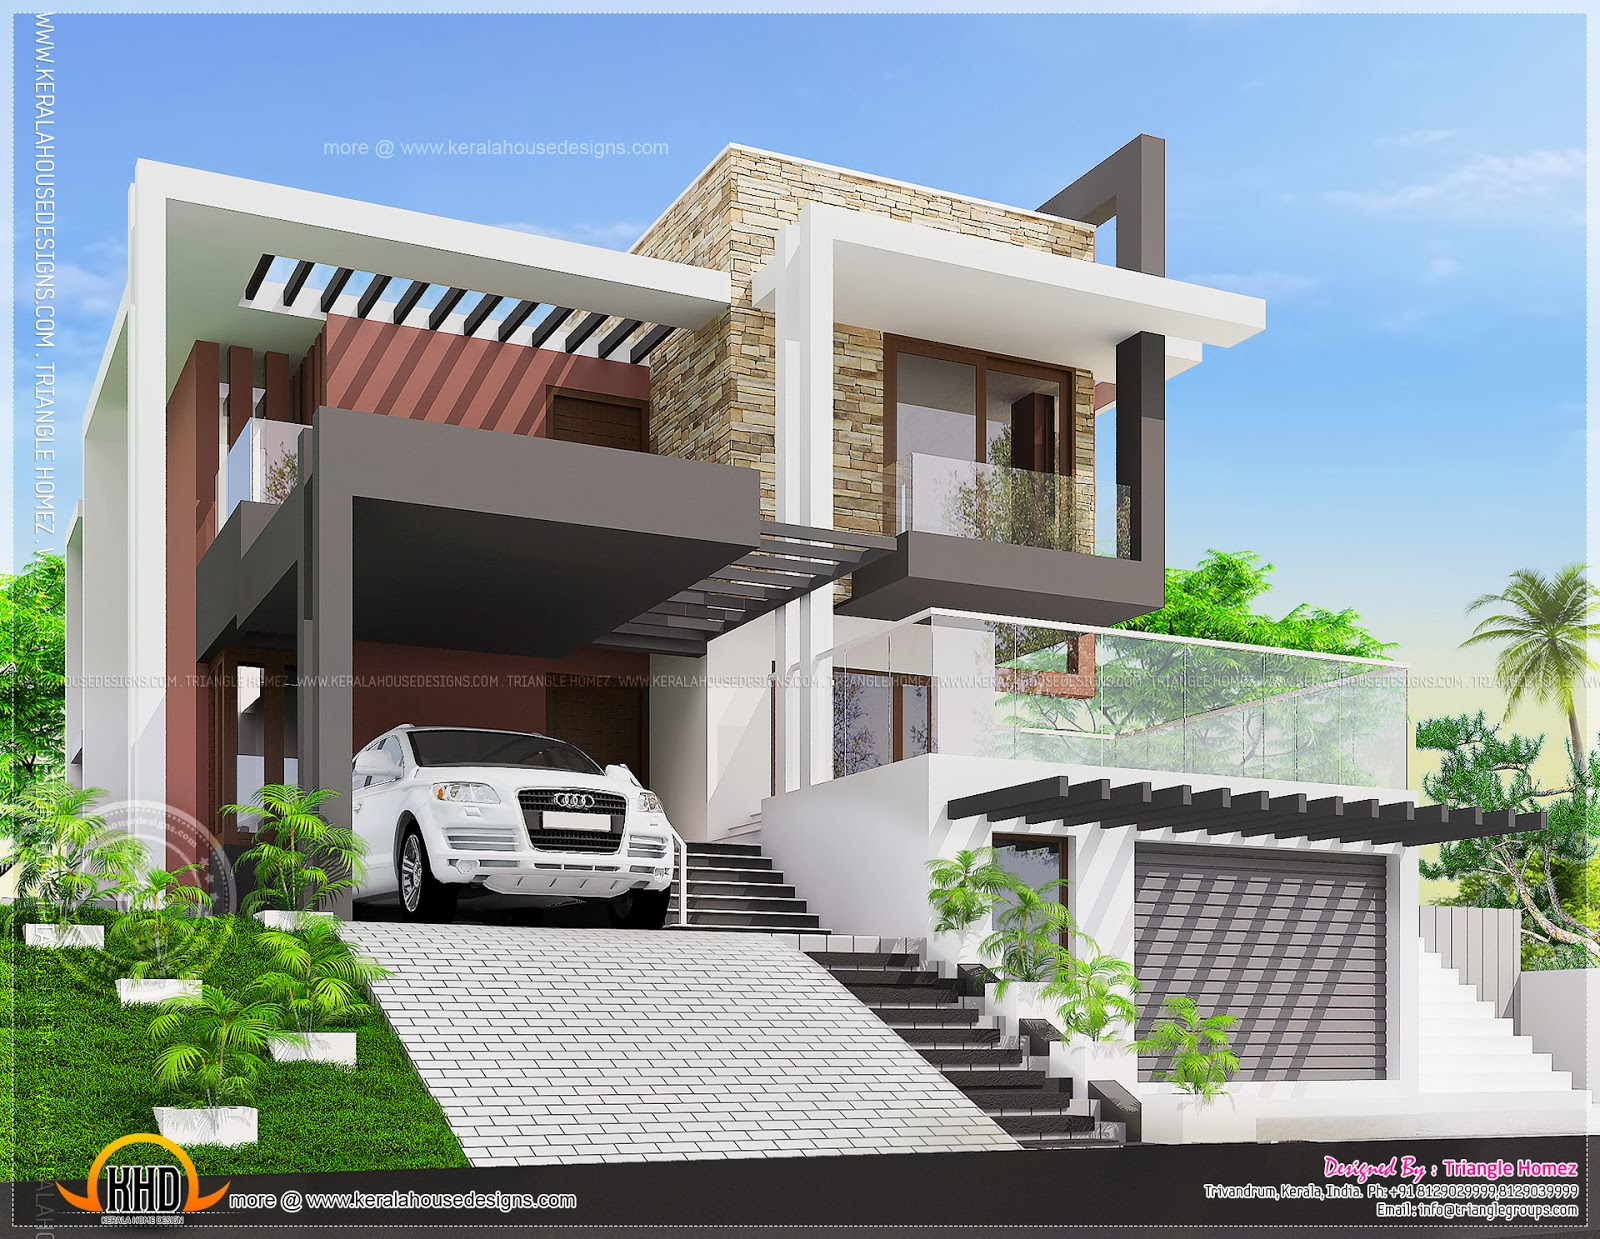 New House Design 2013 november 2013 - kerala home design and floor plans